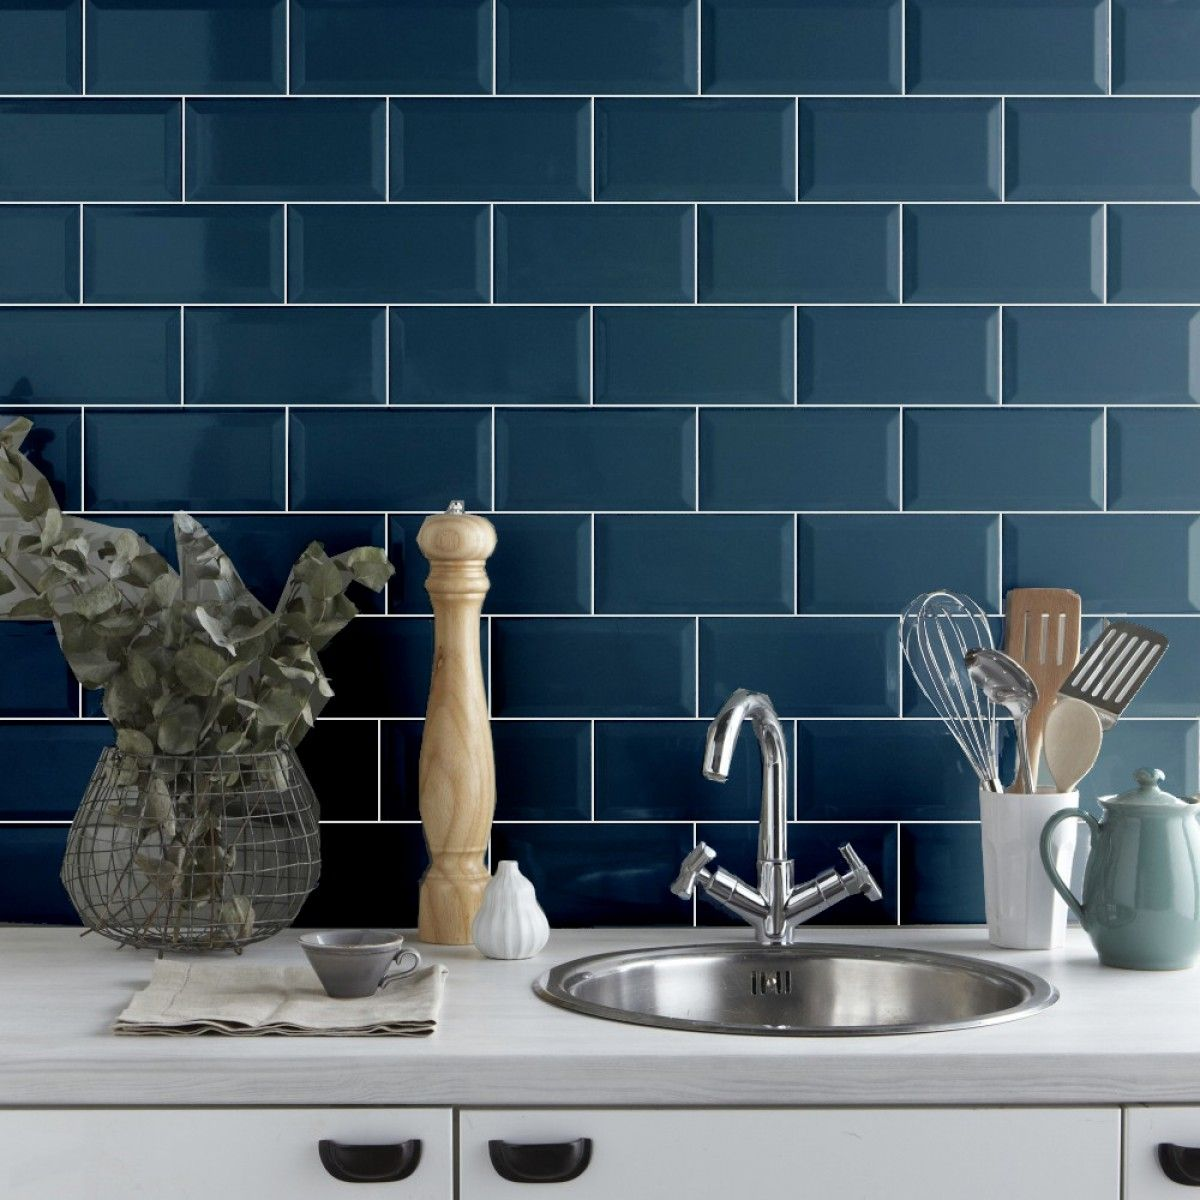 Crown tiles metro atlantis blue wall tile from crown tiles crown tiles metro atlantis blue wall tile from crown tiles dailygadgetfo Images